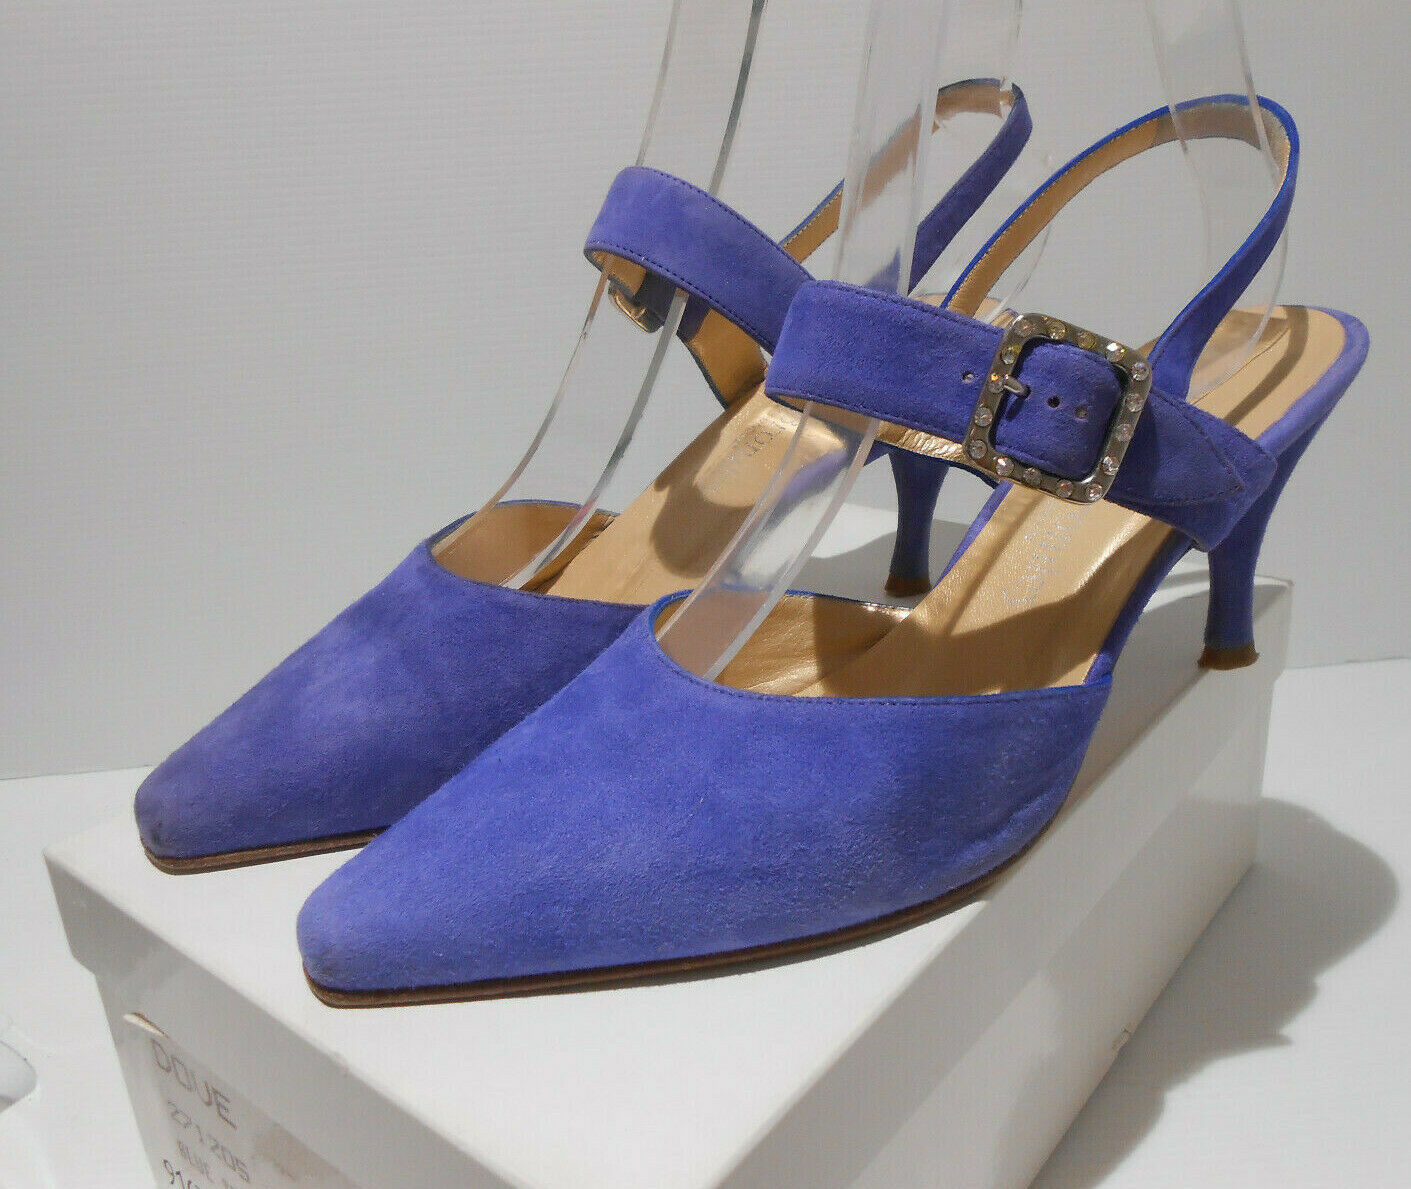 Russell & Bromley jewel buckle strappy blue suede sling back shoes 38.5 5.5 VGC